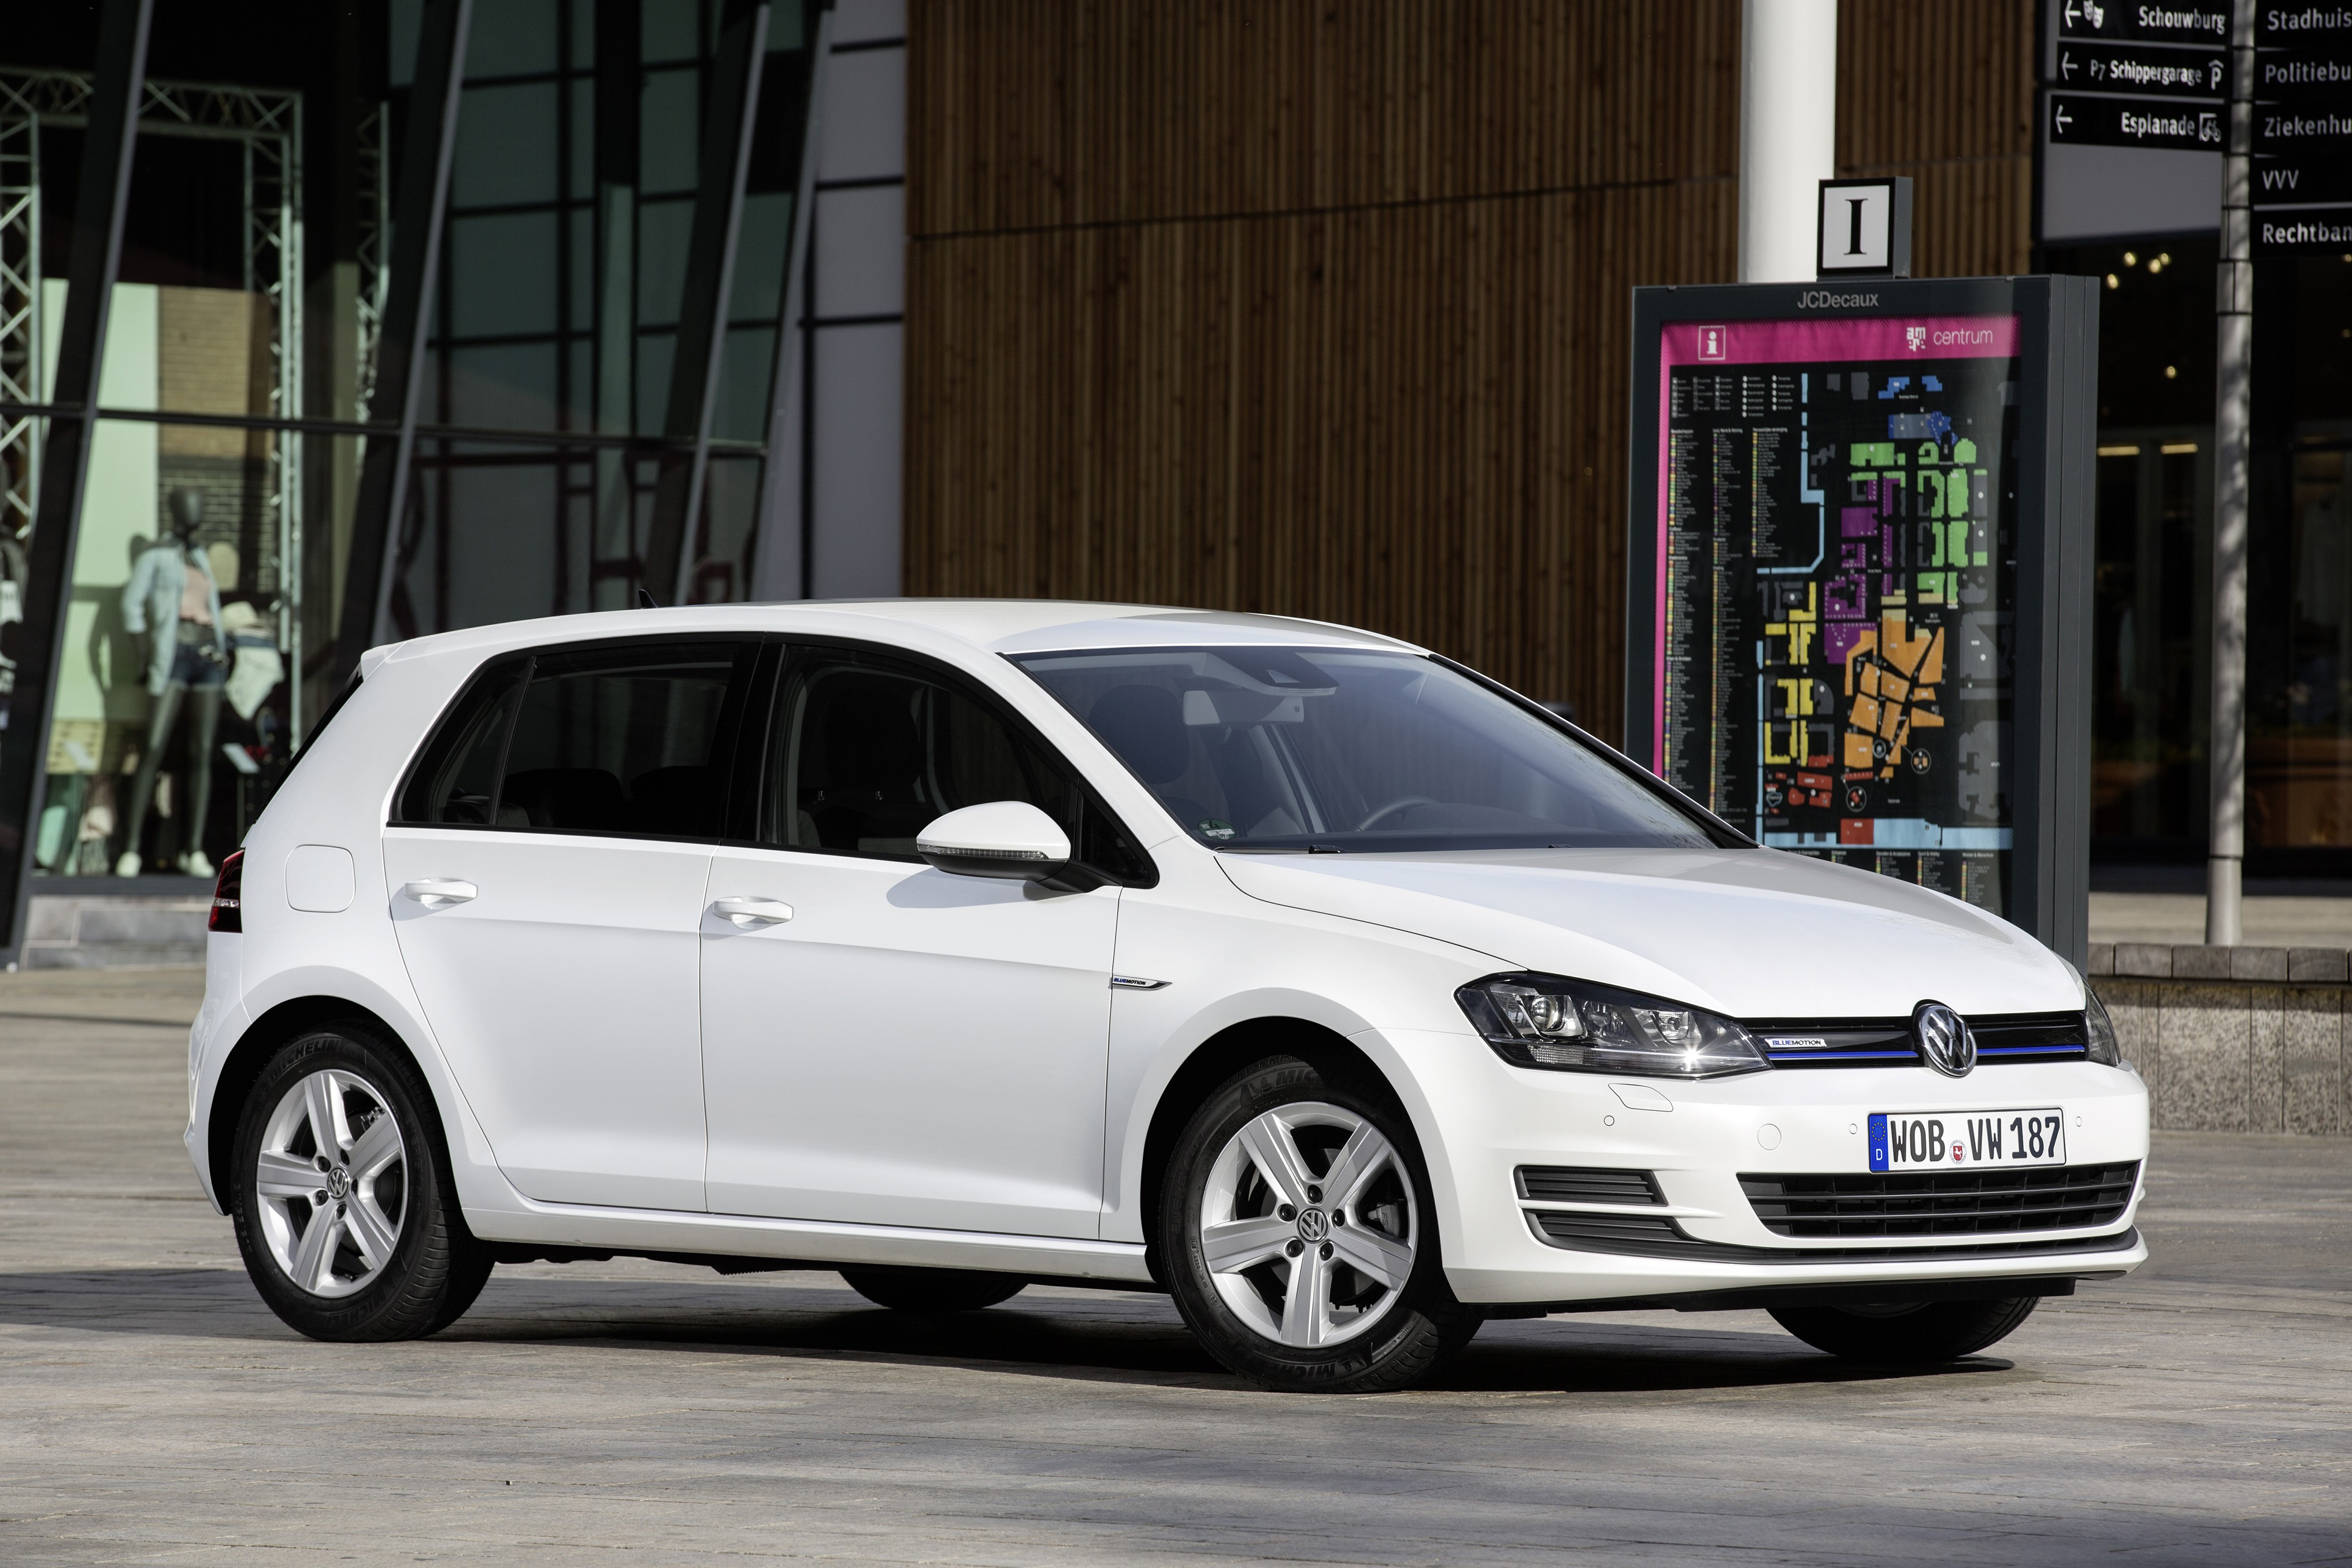 Volkswagen Golf 1.0 TSI BlueMotion Debuts With 3-Cylinder Turbo Engine - autoevolution